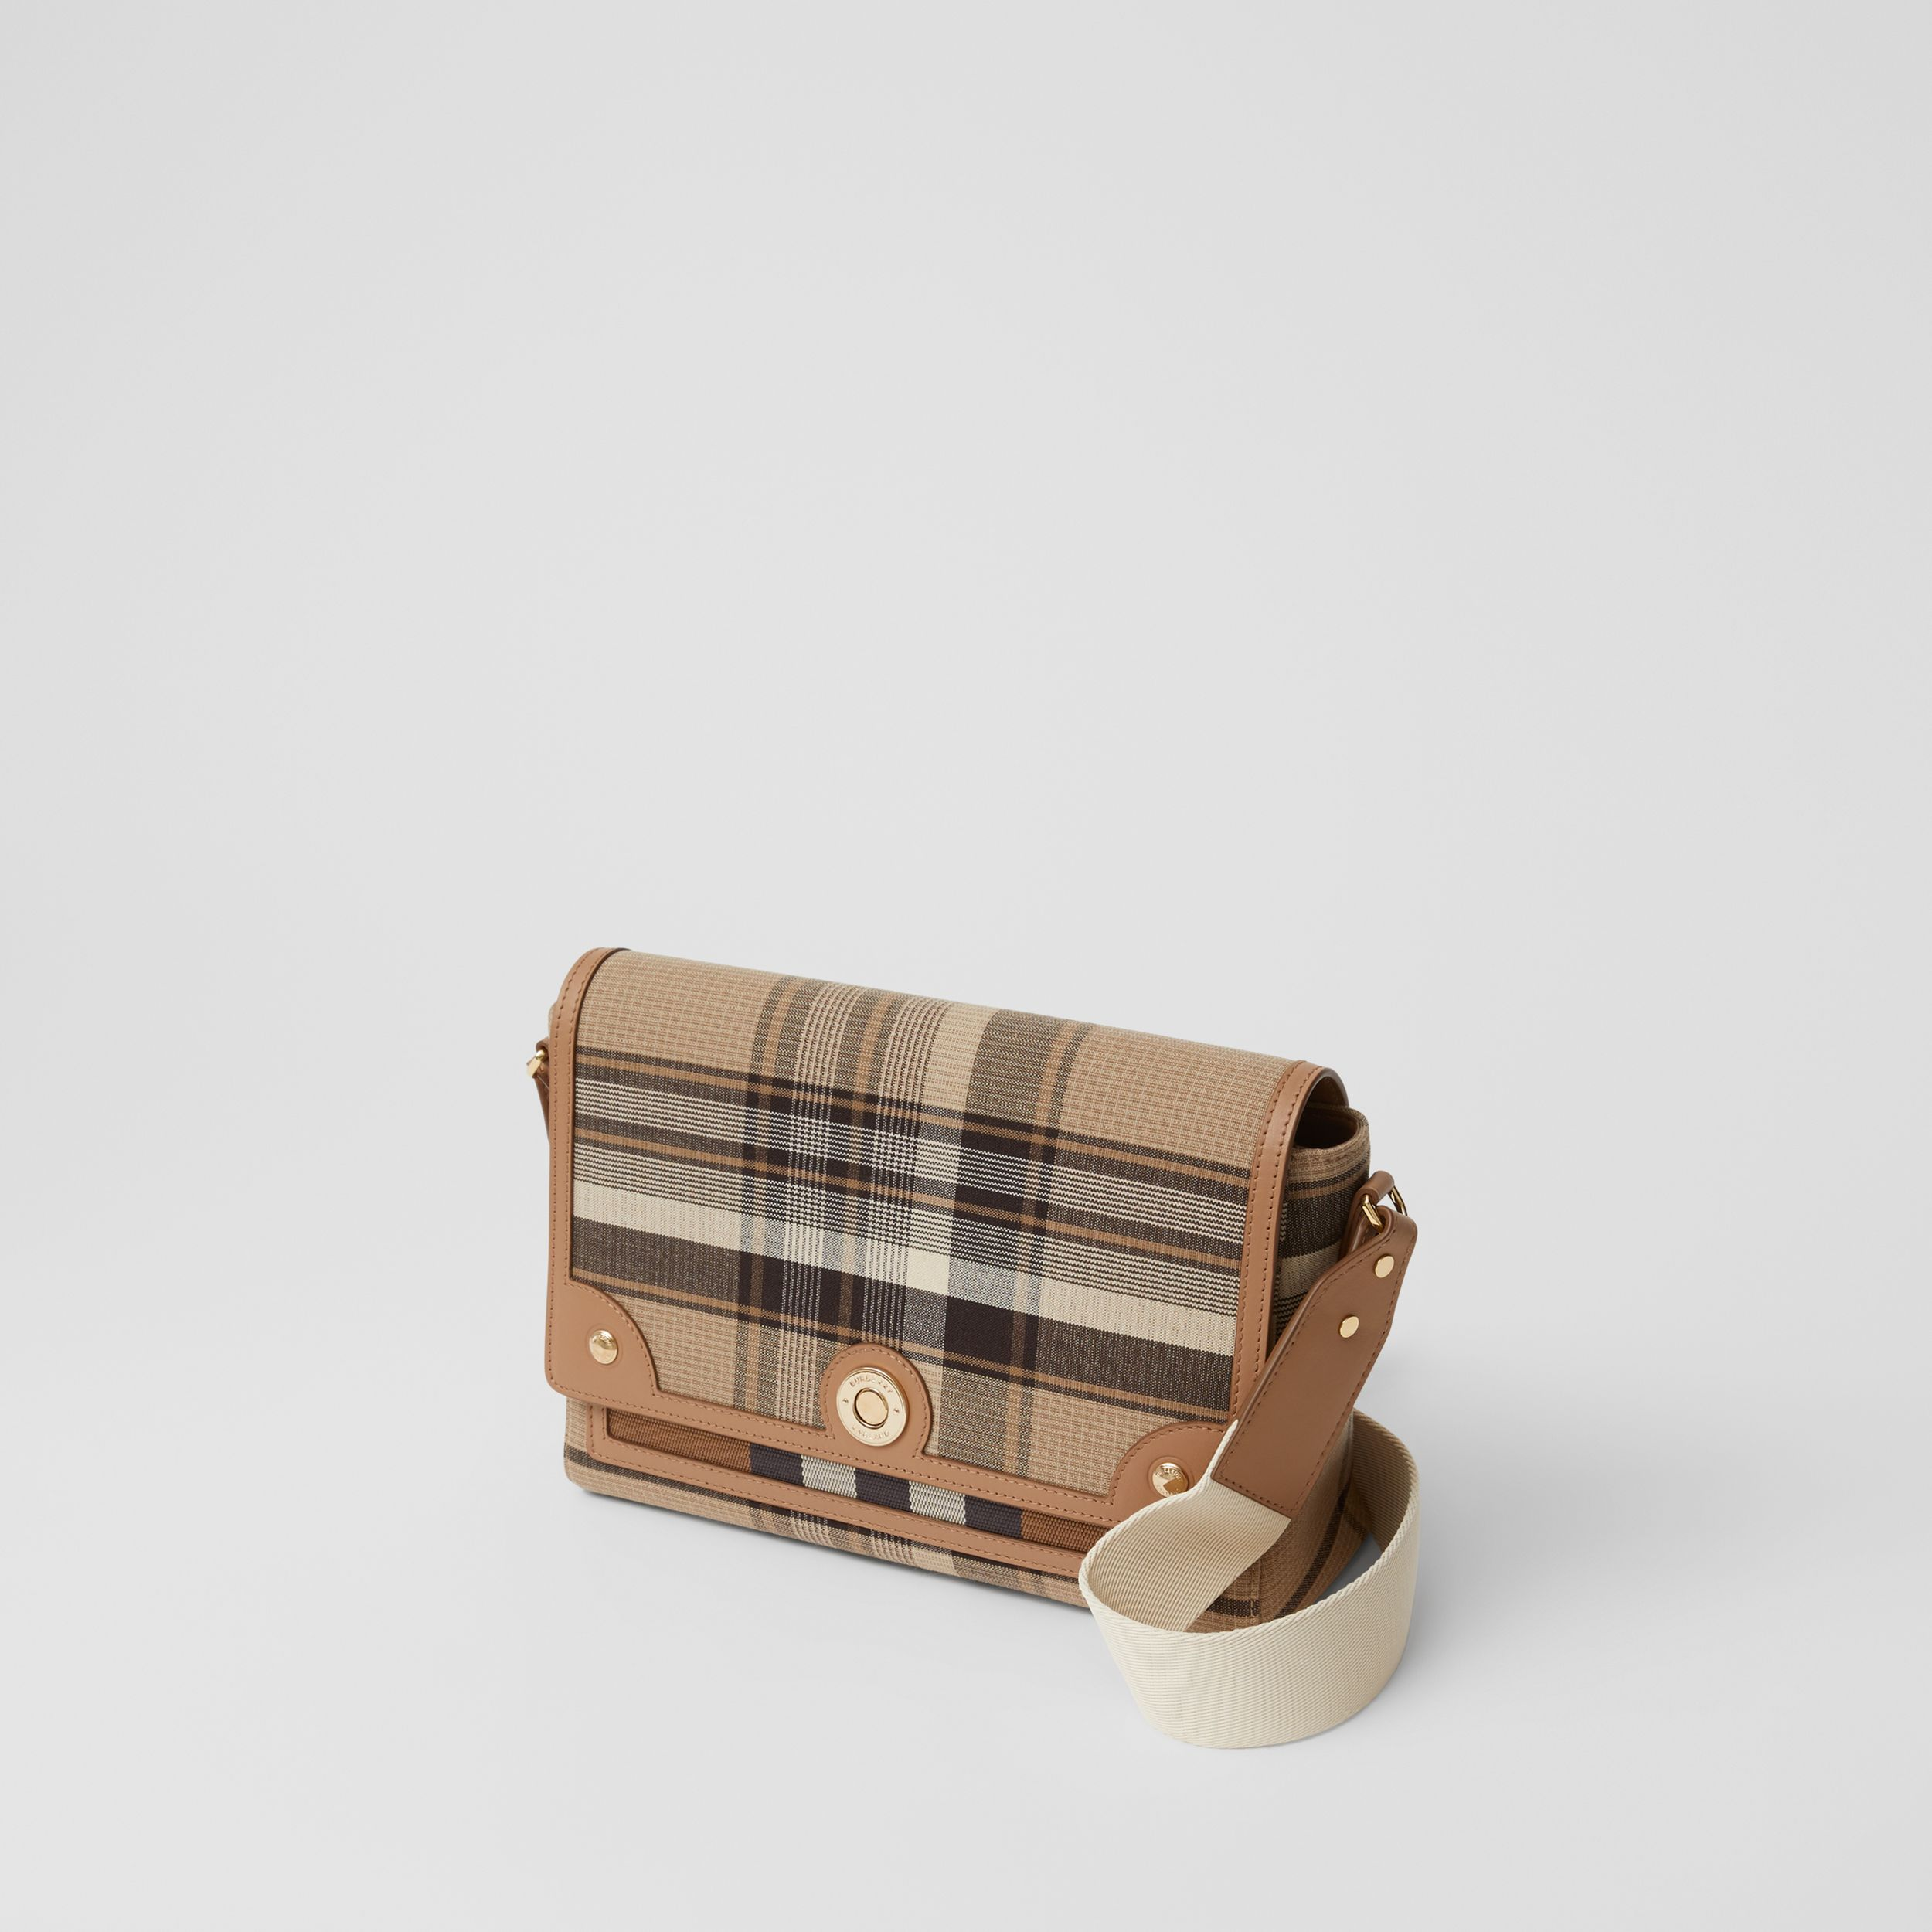 Tartan Wool Note Crossbody Bag in Light Fawn - Women | Burberry - 3